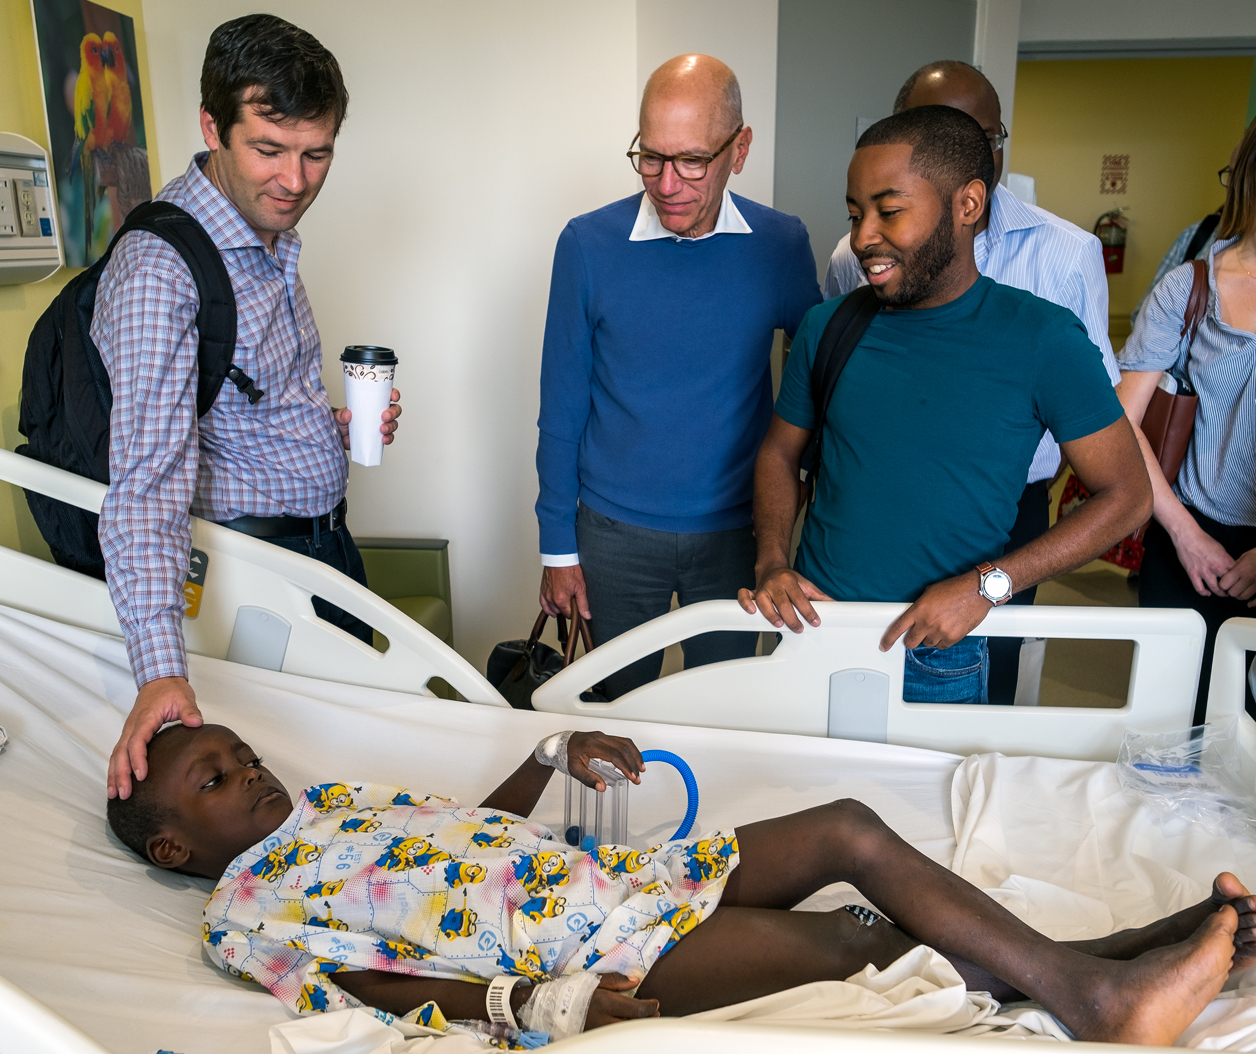 Before his surgery, Woodmylens meets Dr. Adams and team members from the Mitral Foundation and Haiti Cardiac Alliance.